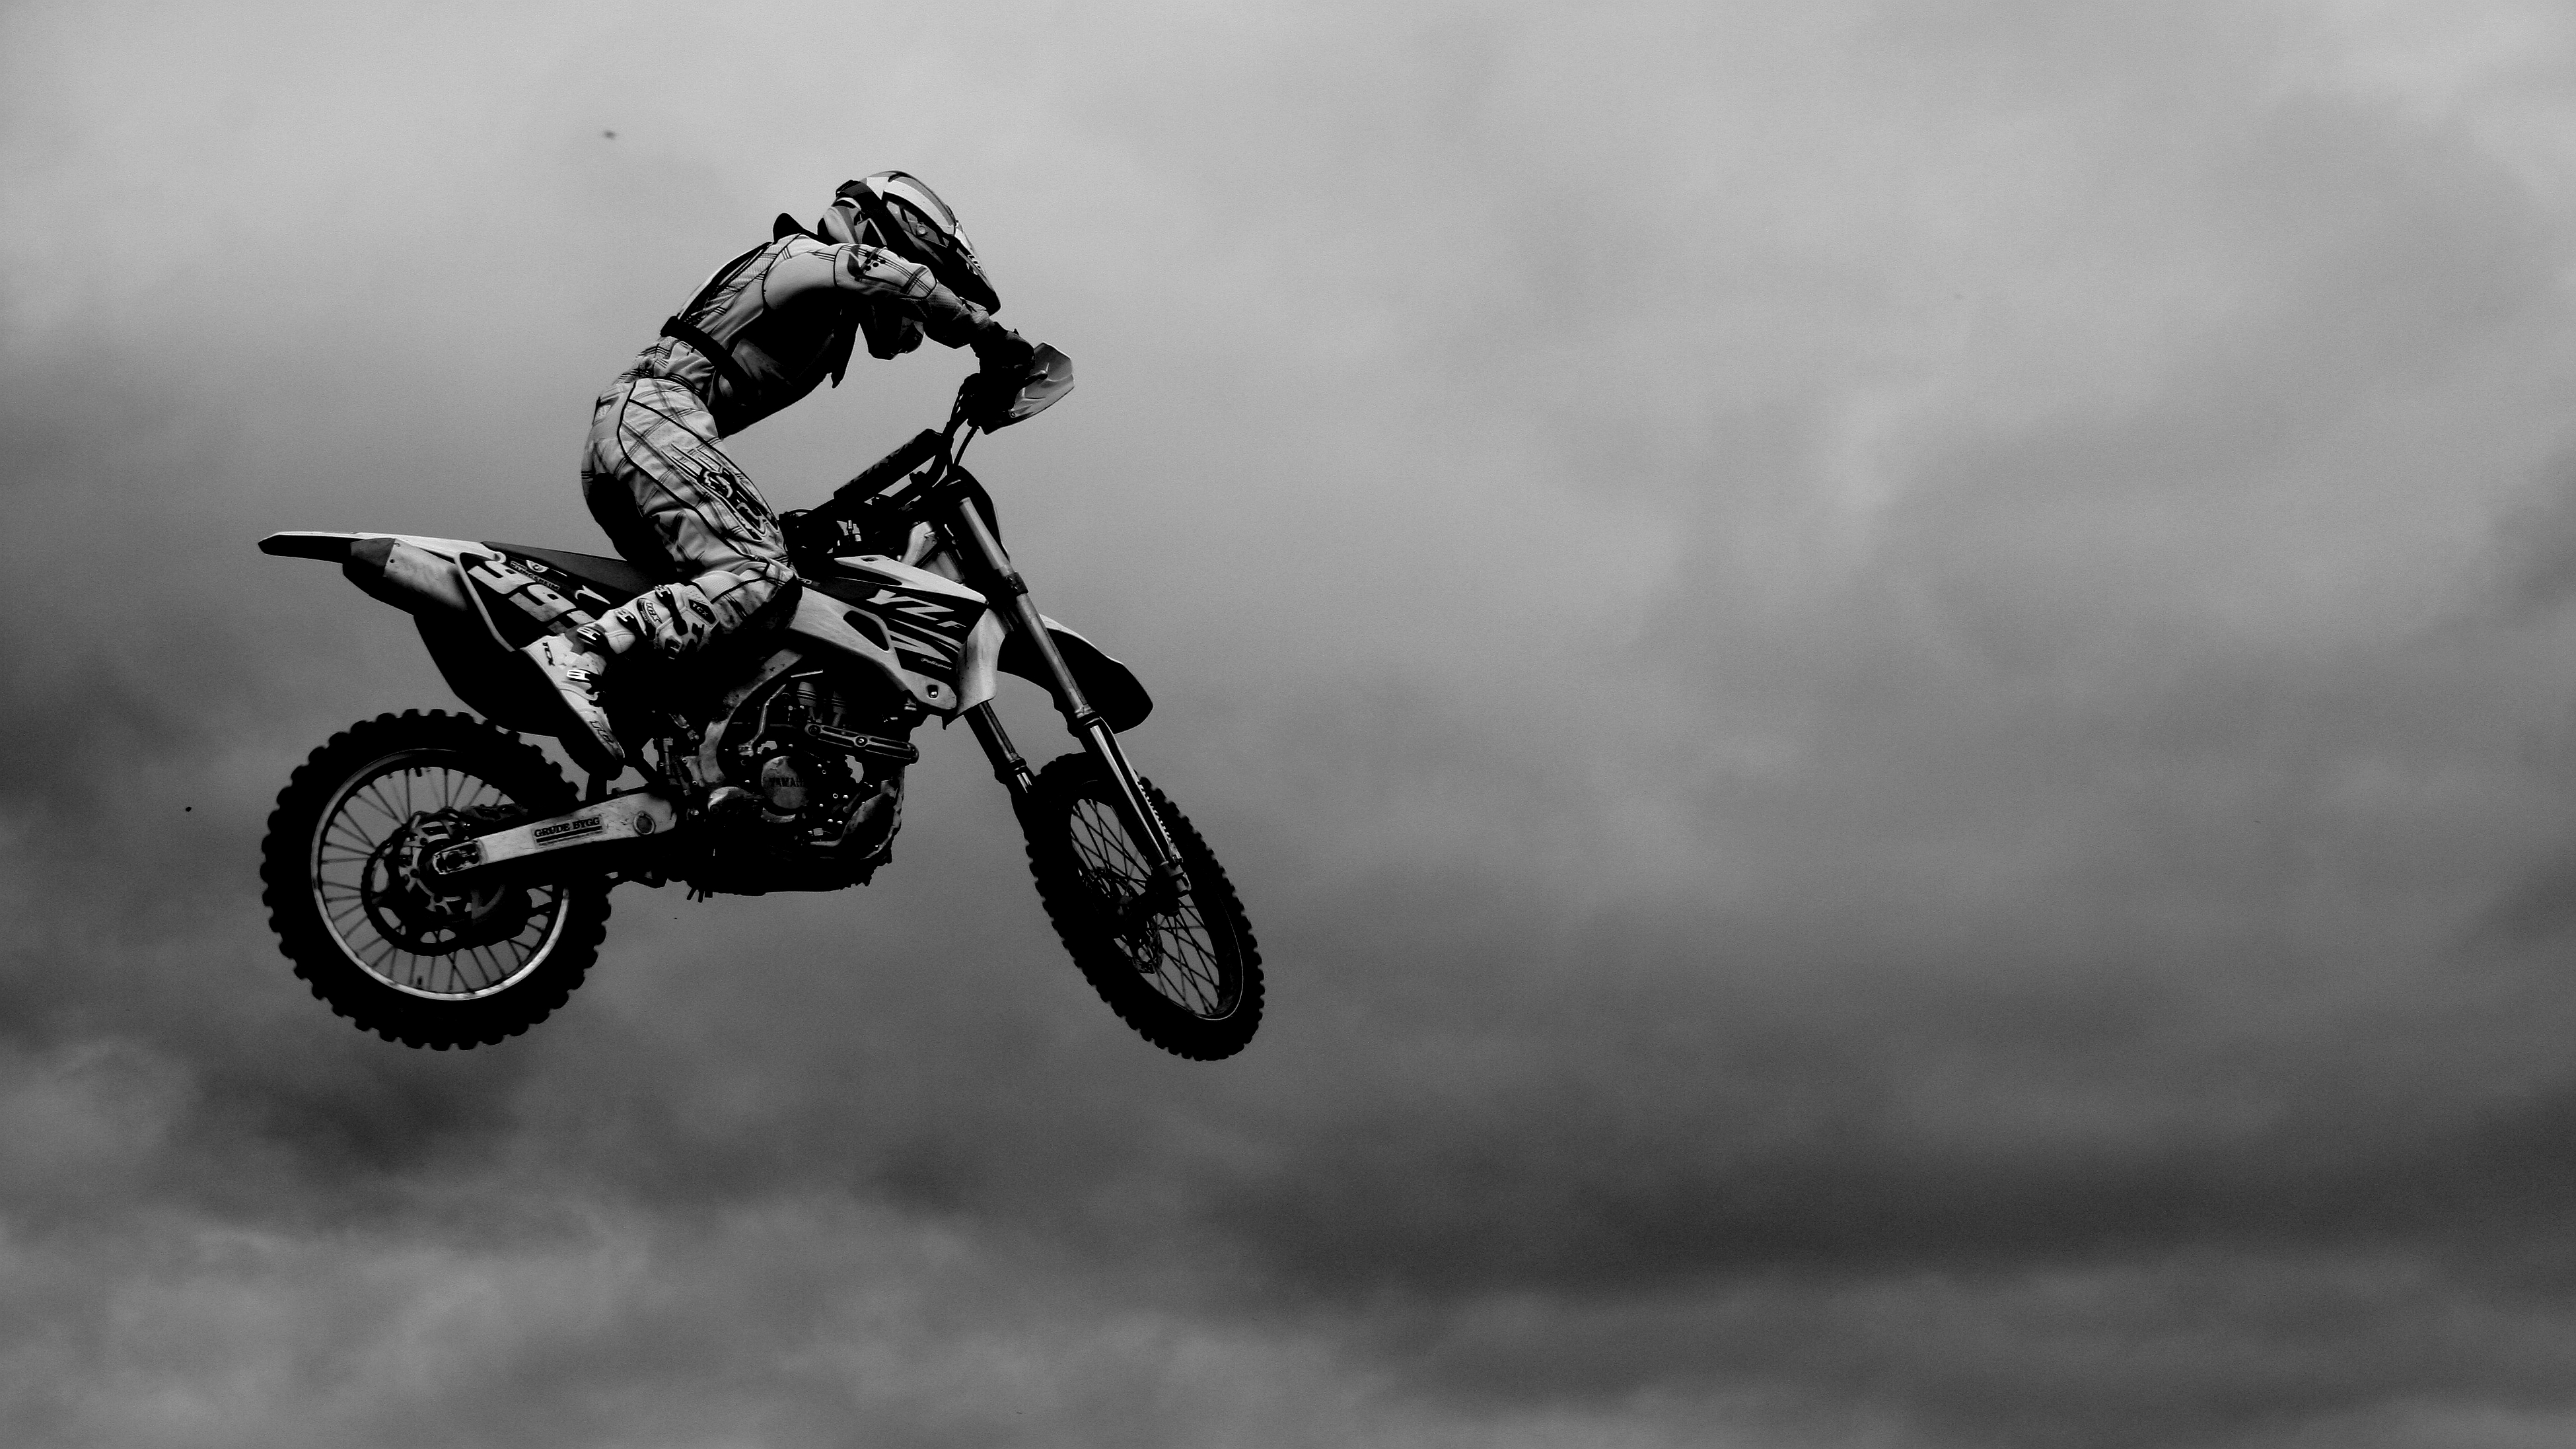 New Motocross High Quality Wallpapers   All HD Wallpapers 3900x2194